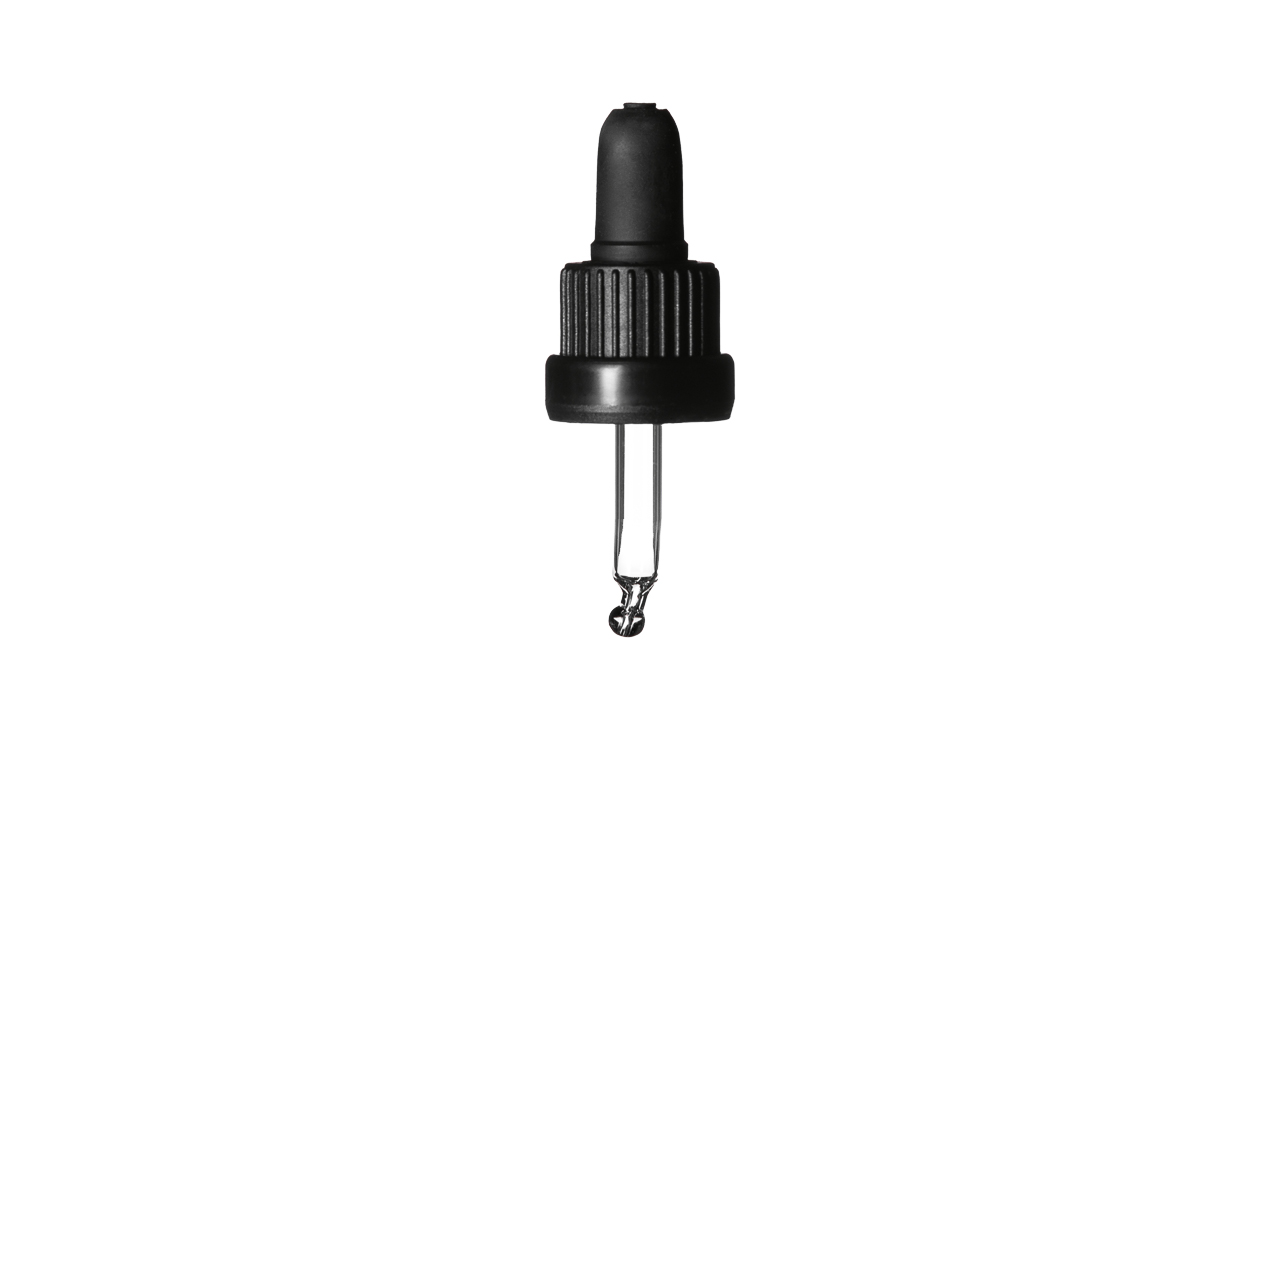 Tamper-evident pipette series III, DIN18, PP, black matt, ribbed, black bulb TPE 0.7 ml, ball tip, bent (for Orion 5 ml)